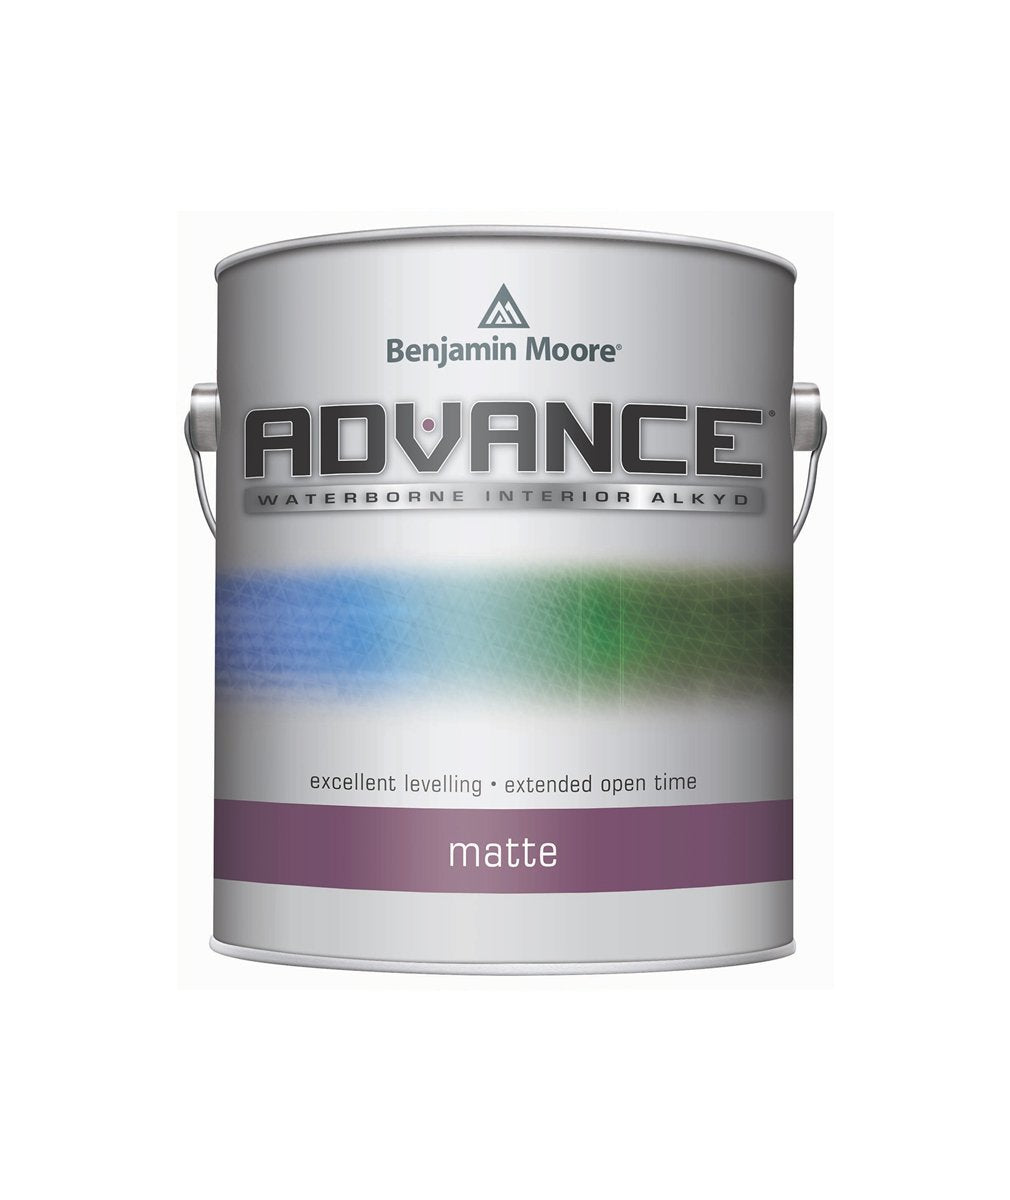 Benjamin Moore Advance Matte Paint available at JC Licht.